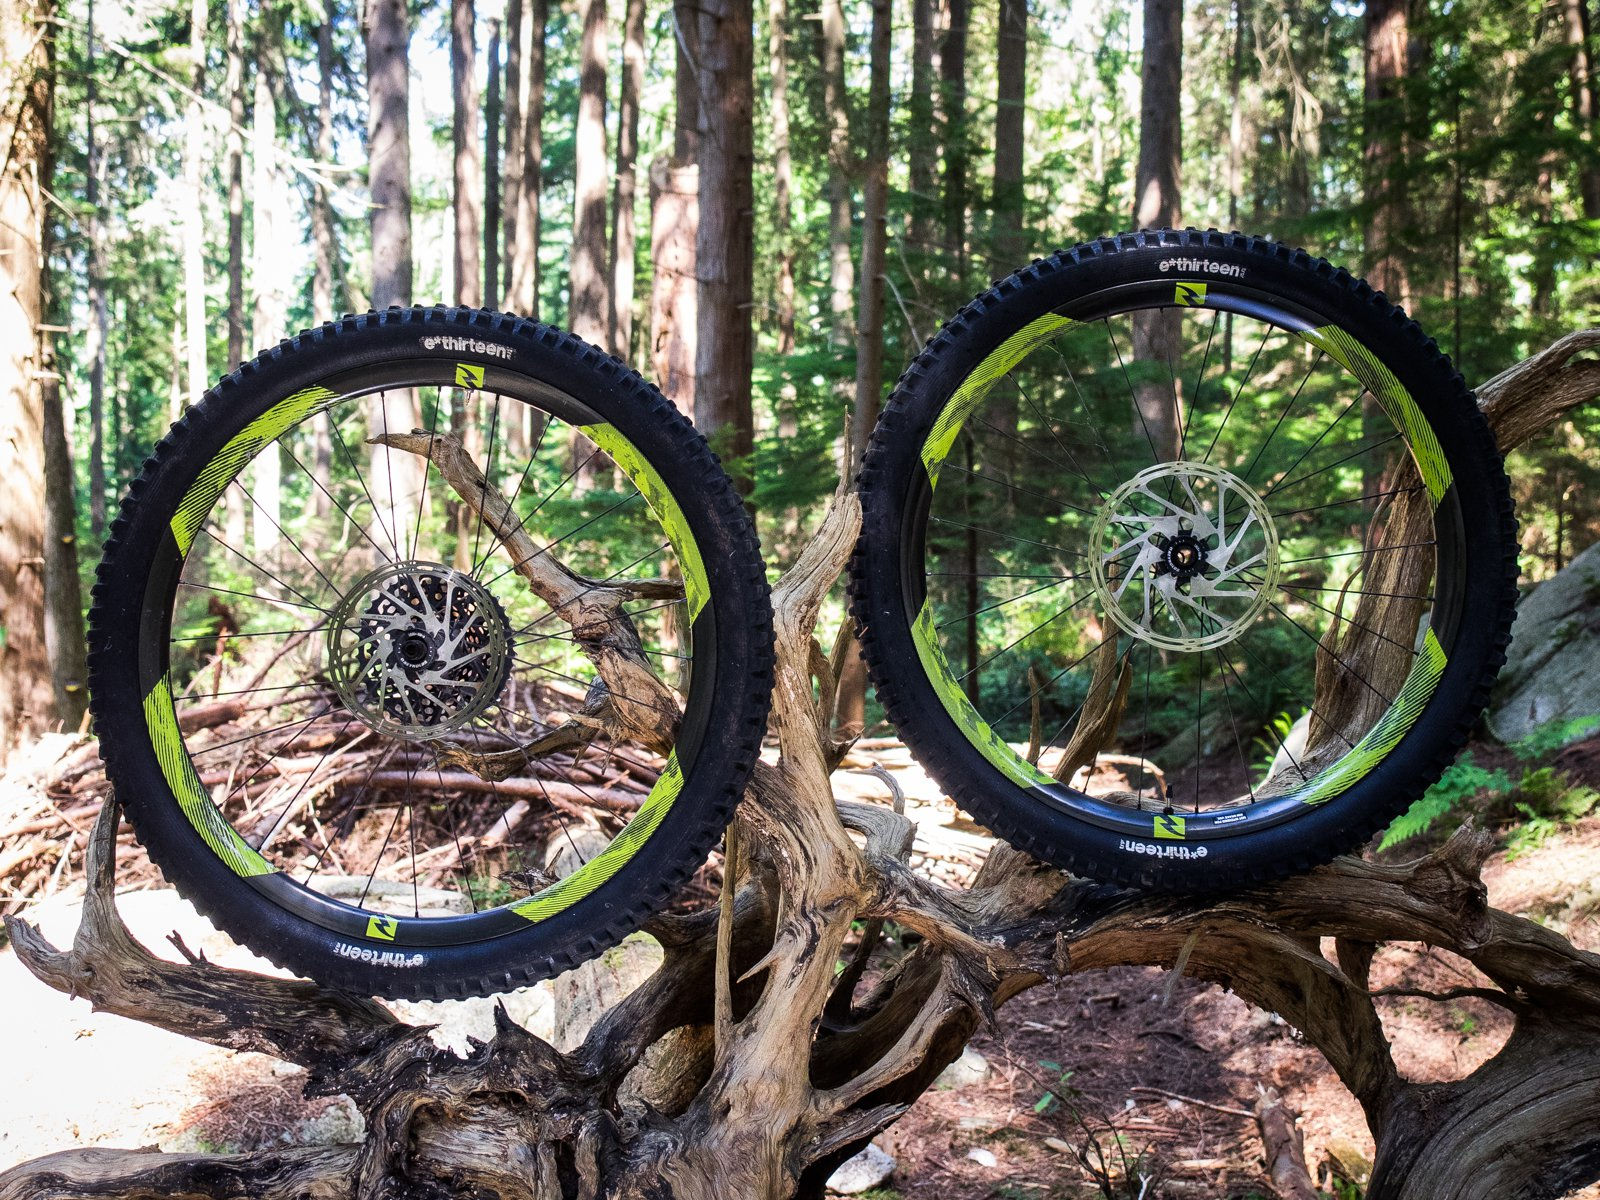 e*thirteen TRSr Tires on Reynolds Enduro Rims